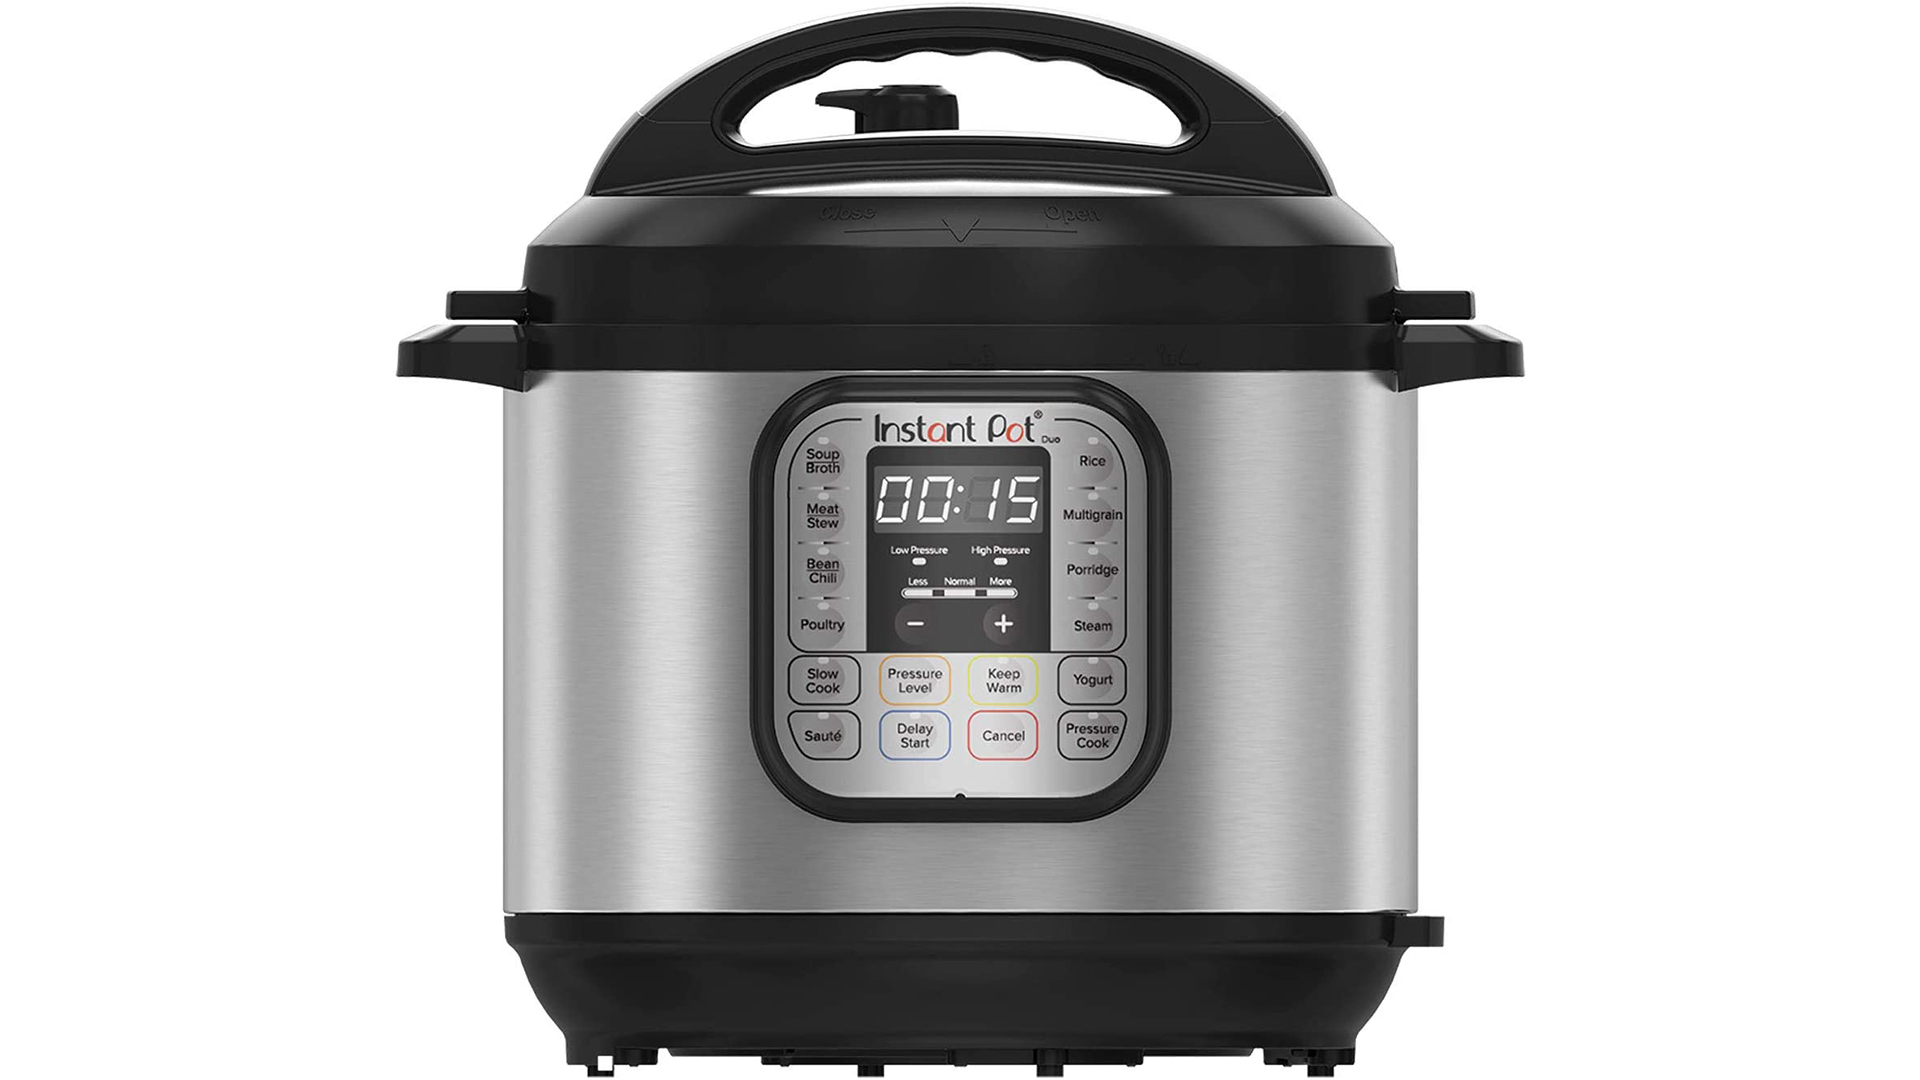 The Instant Pot Duo Nova is down to $69 right now